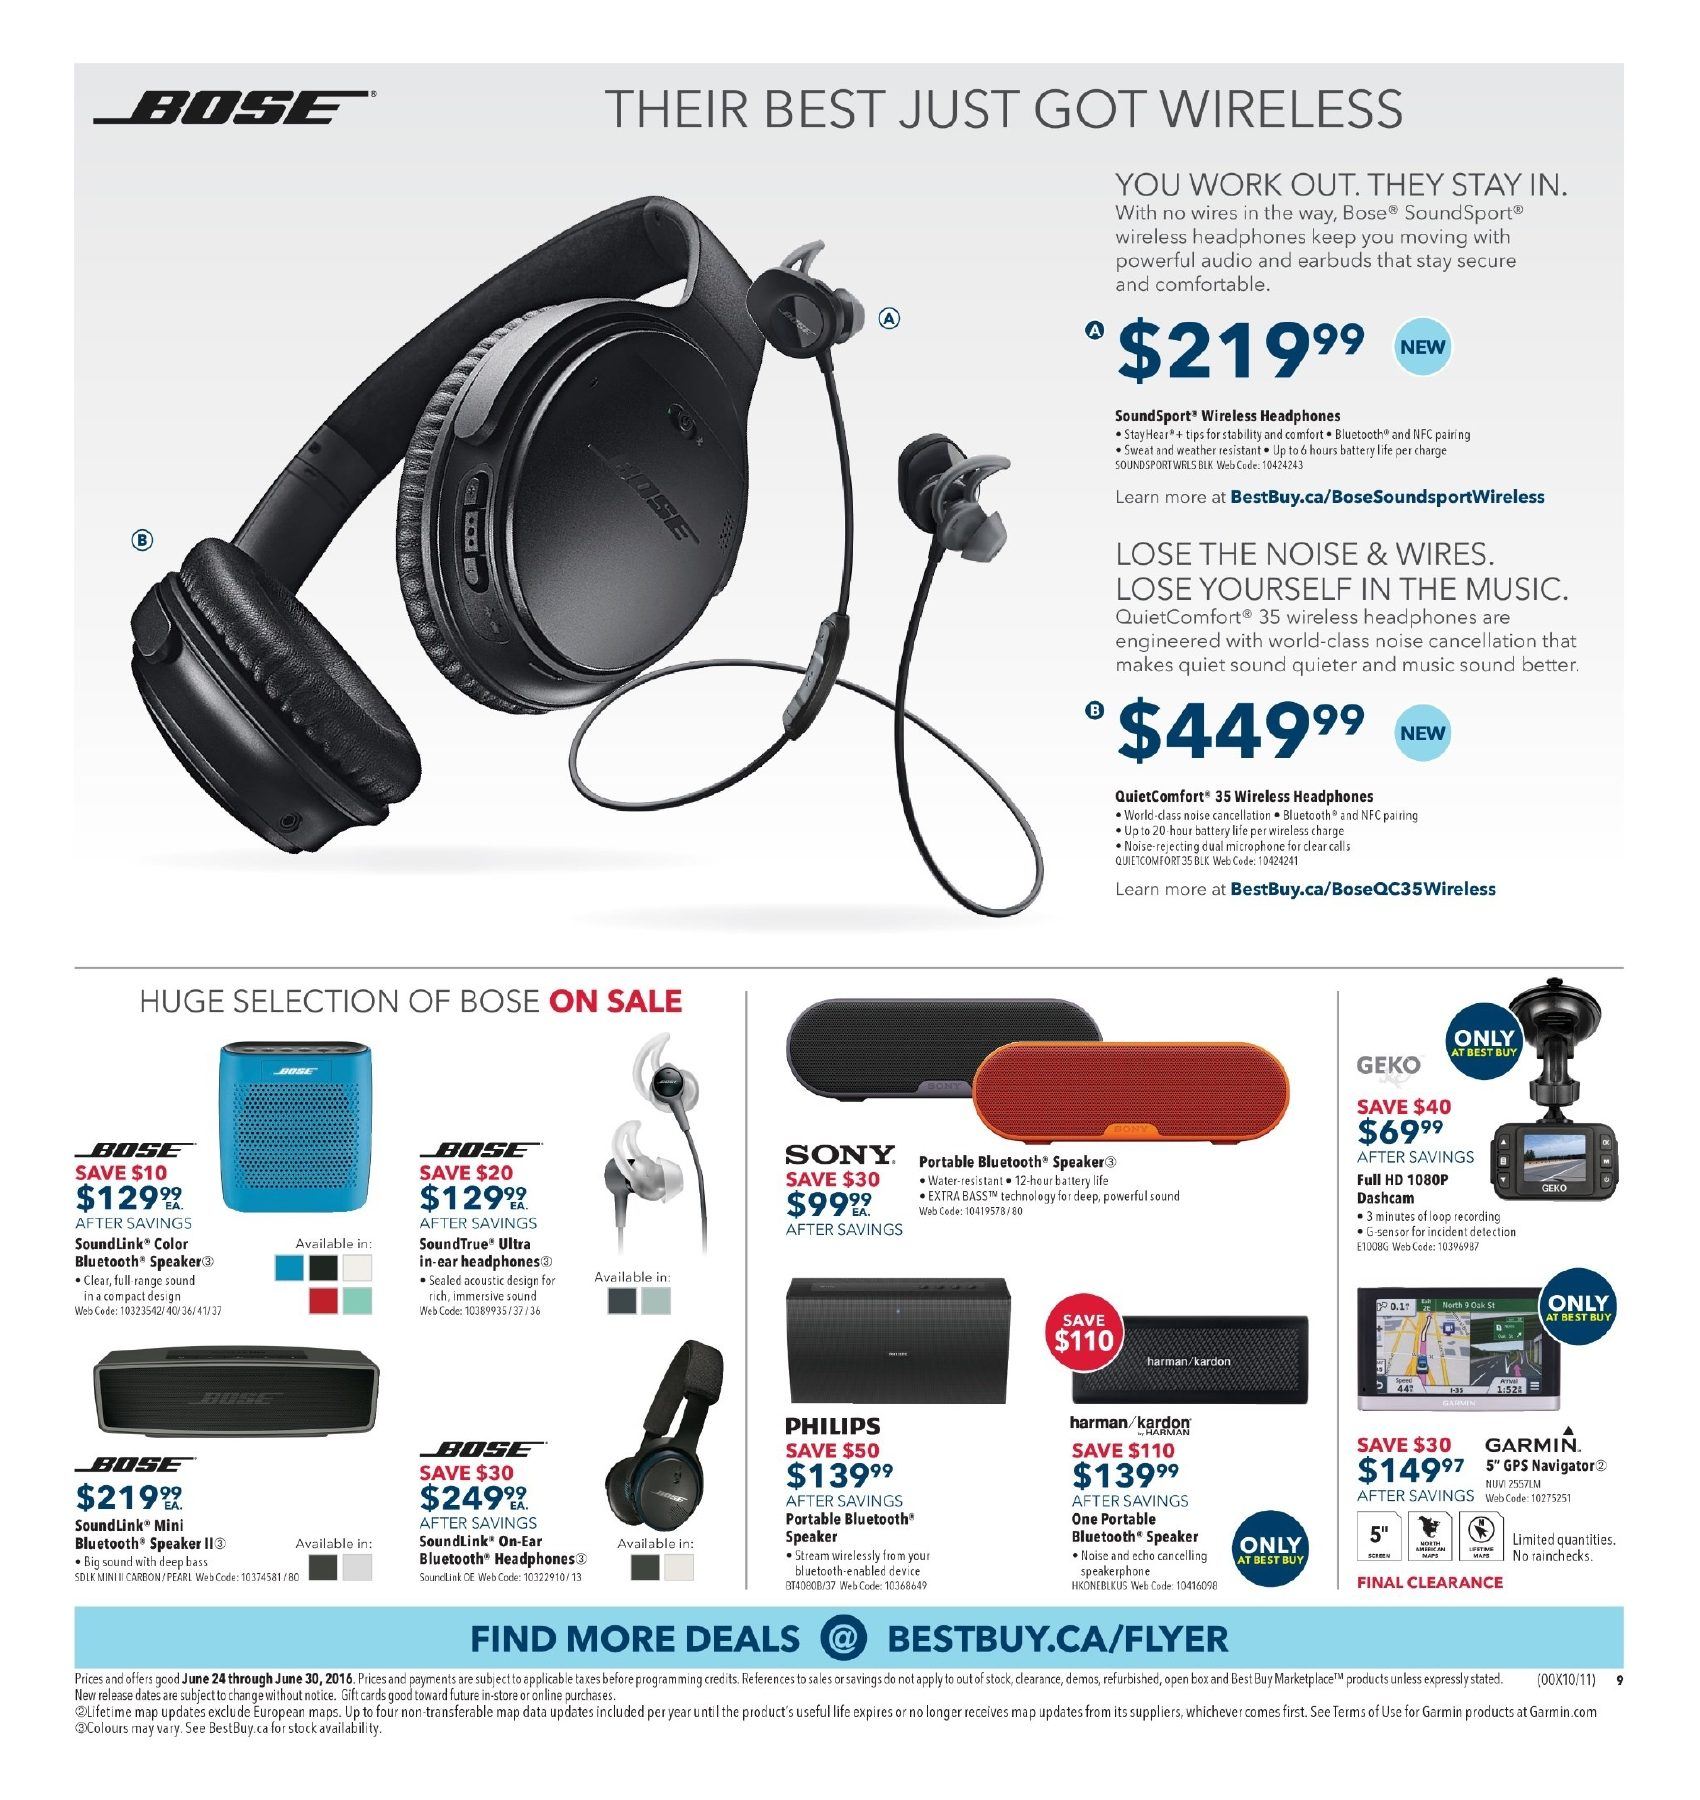 Best buy weekly flyer weekly summer made mobile jun 24 30 best buy weekly flyer weekly summer made mobile jun 24 30 redflagdeals fandeluxe Image collections